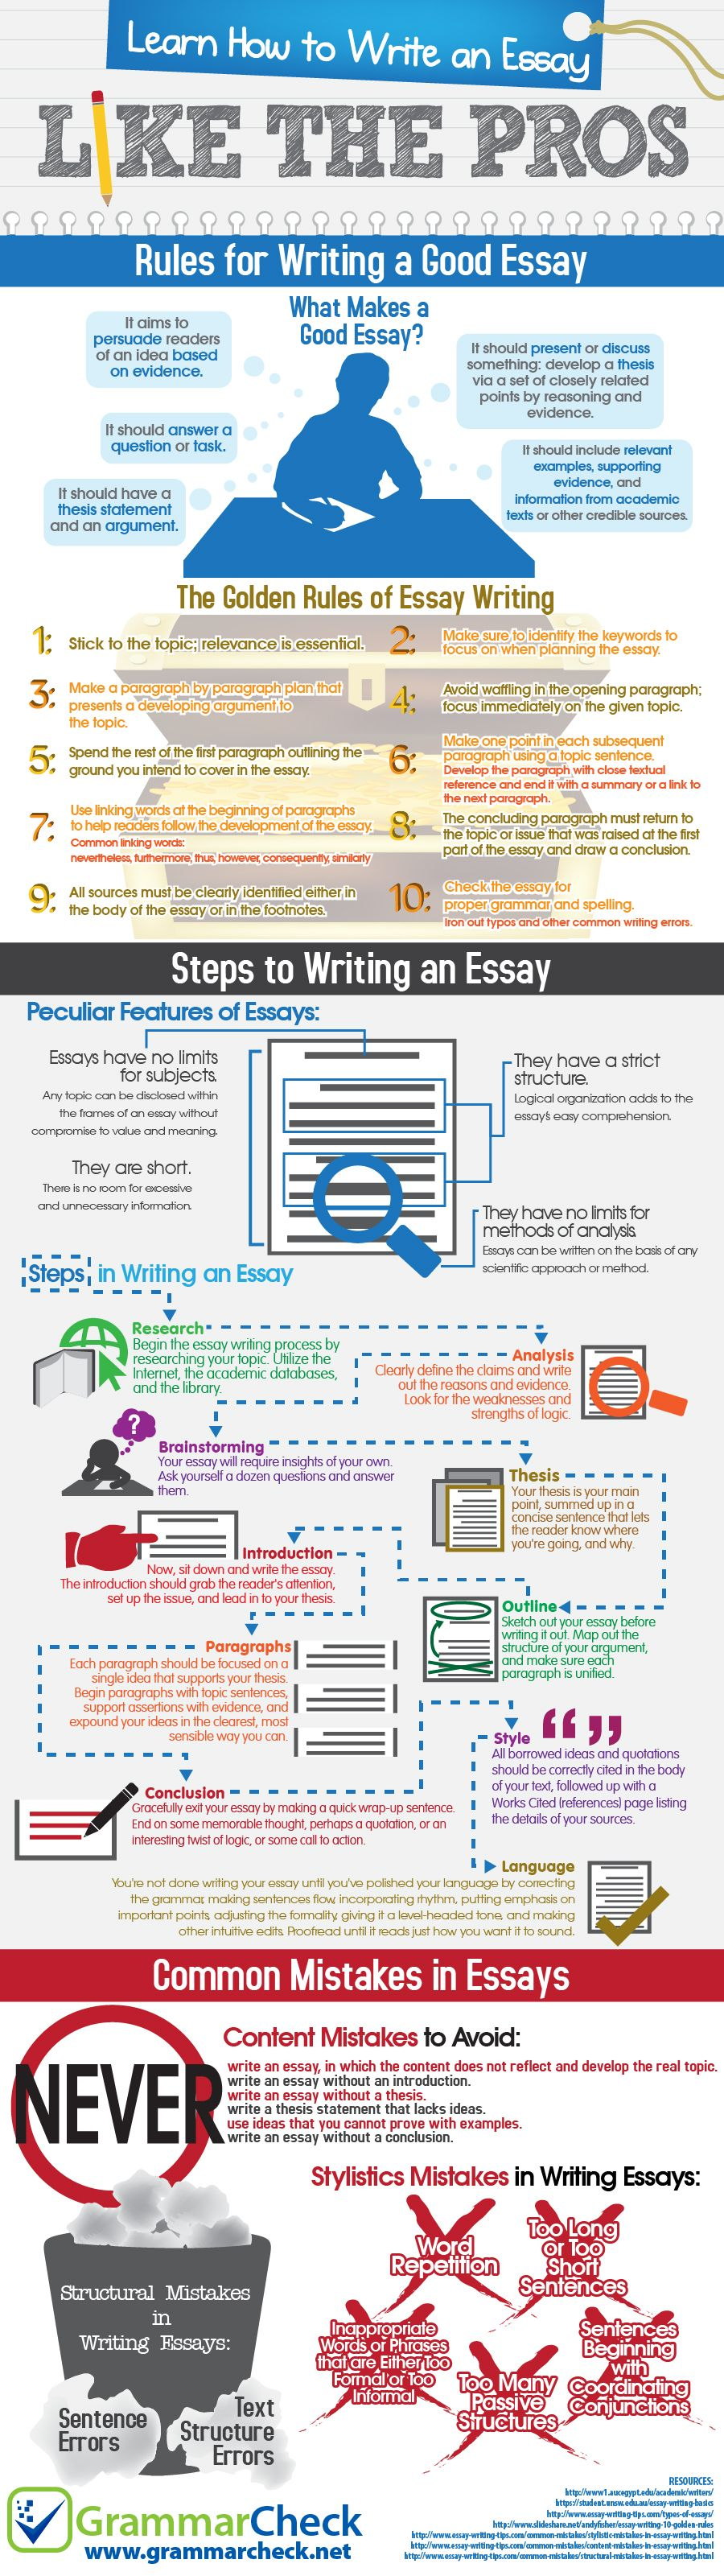 How to Write an Essay Like the Pros Infographic About Writing